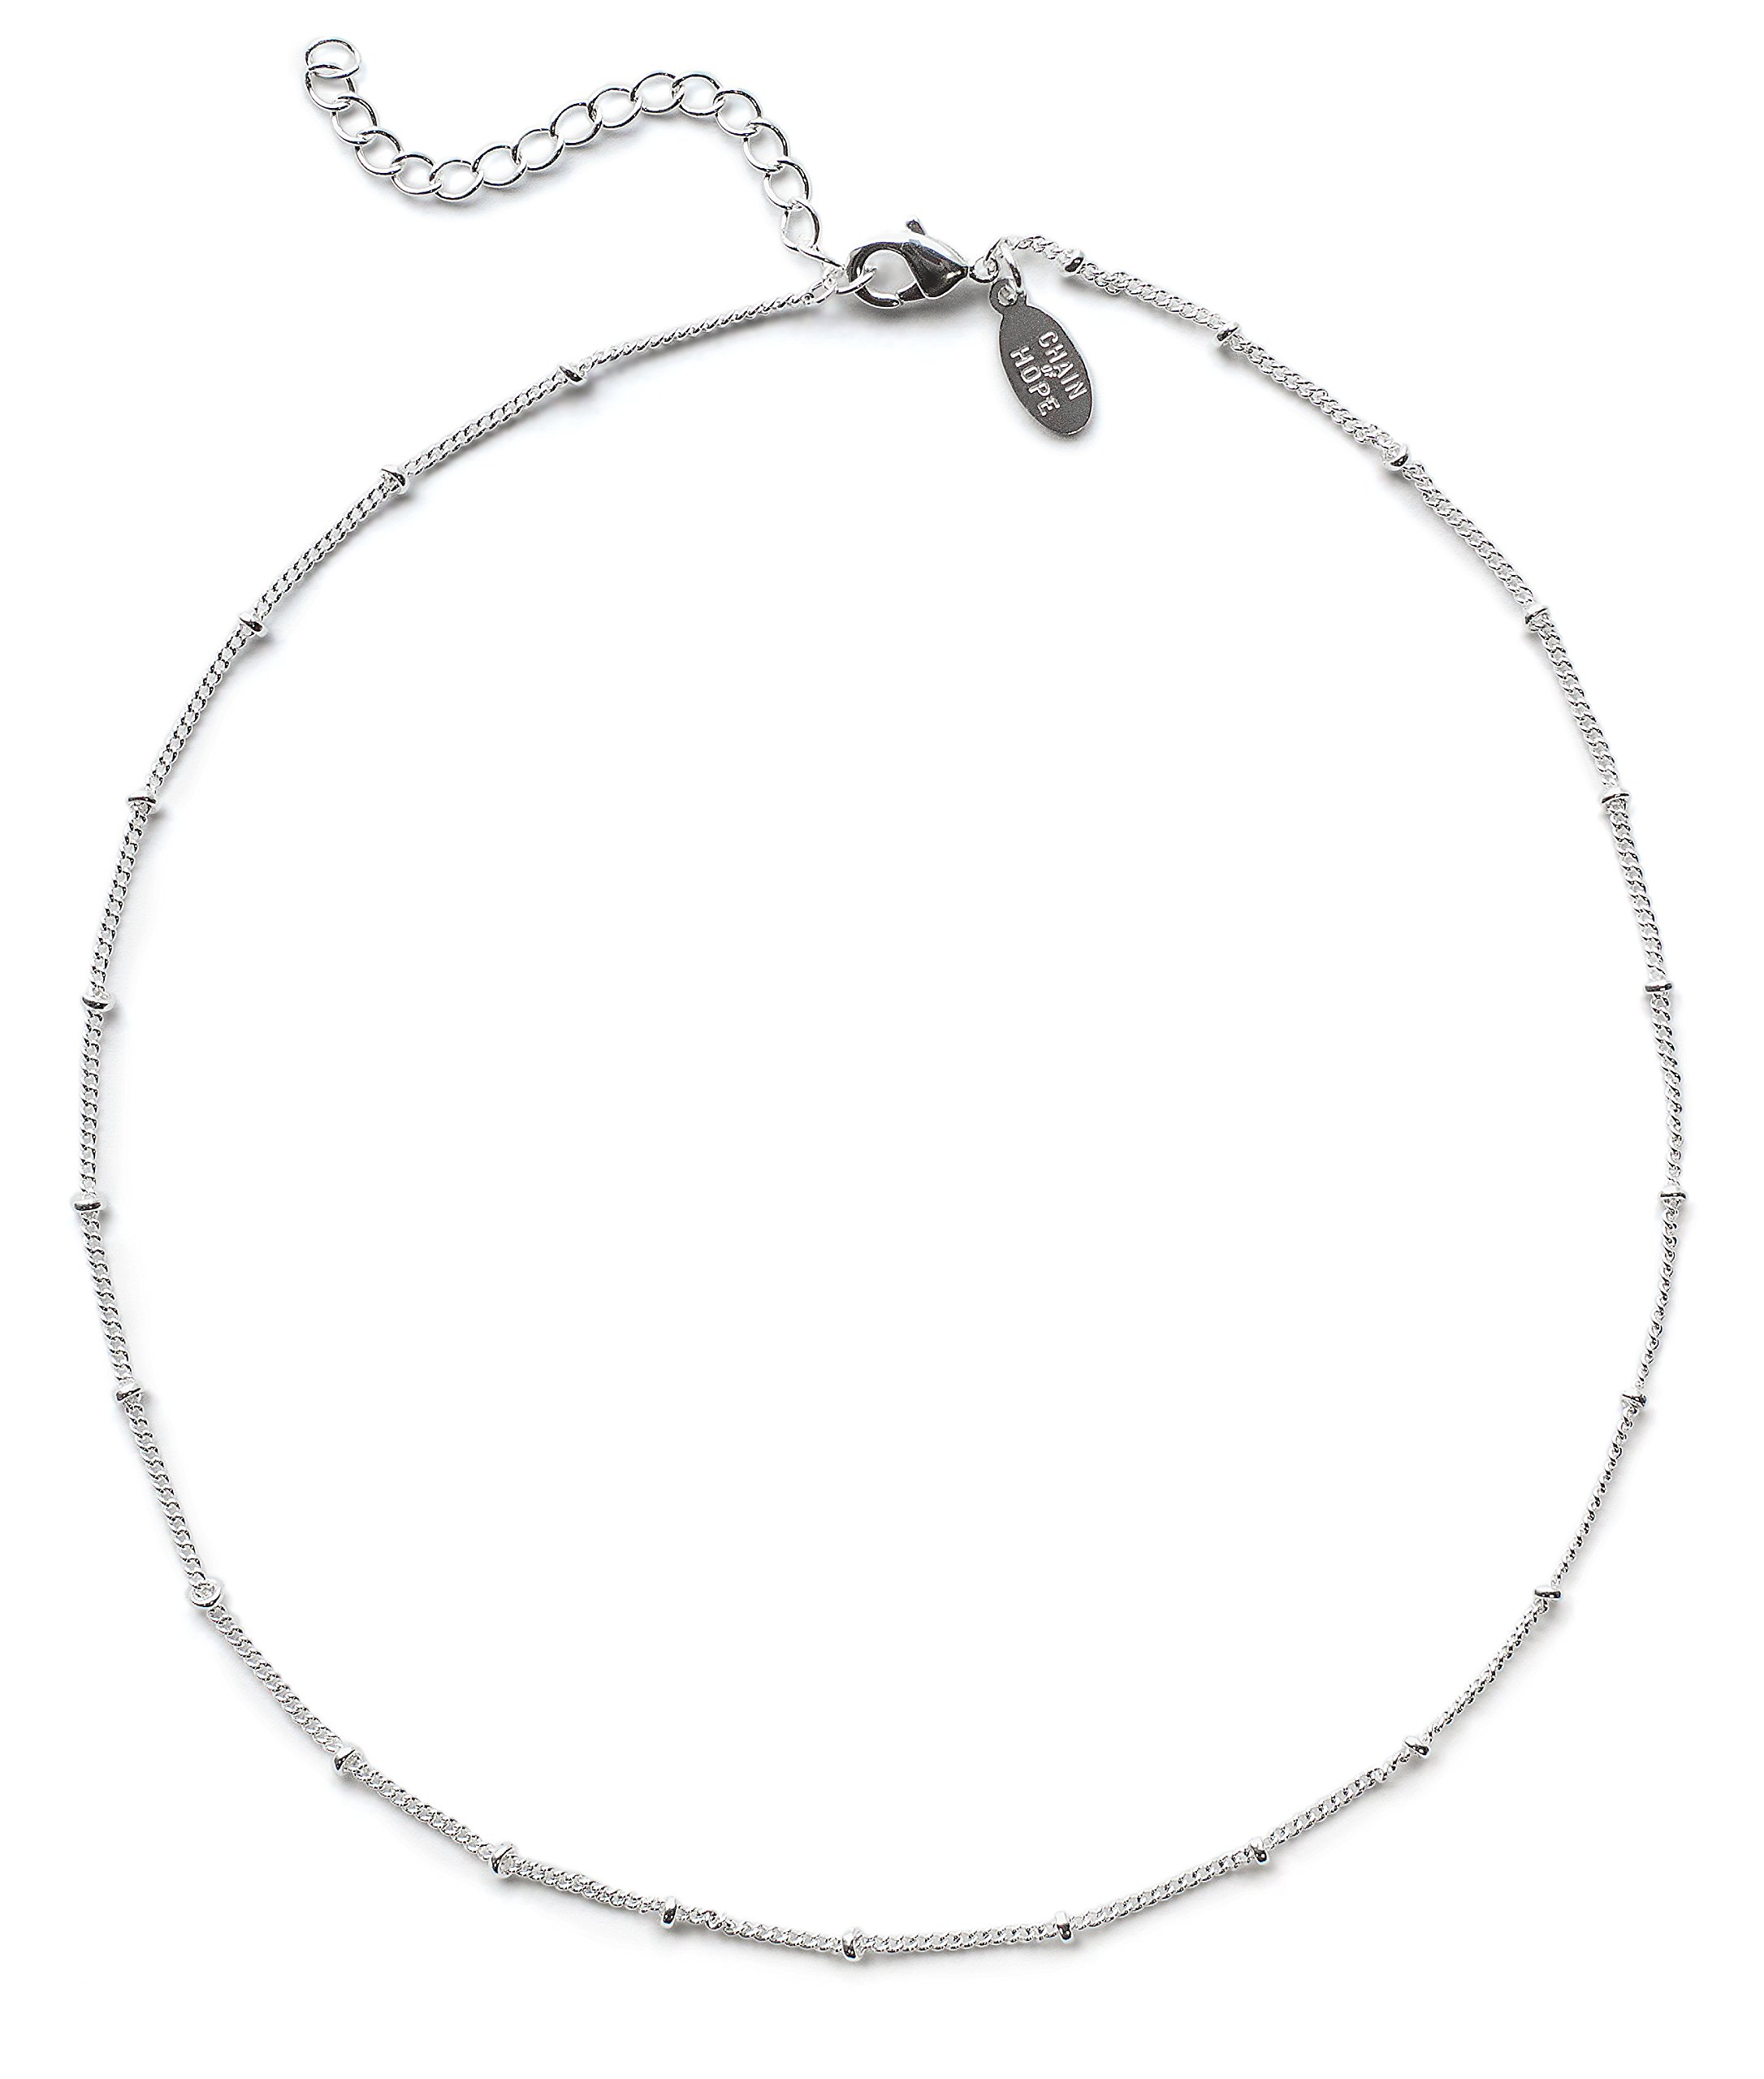 Choker Necklace in Sterling Silver: Beaded Satellite Chain Chokers Dainty Necklaces for Women